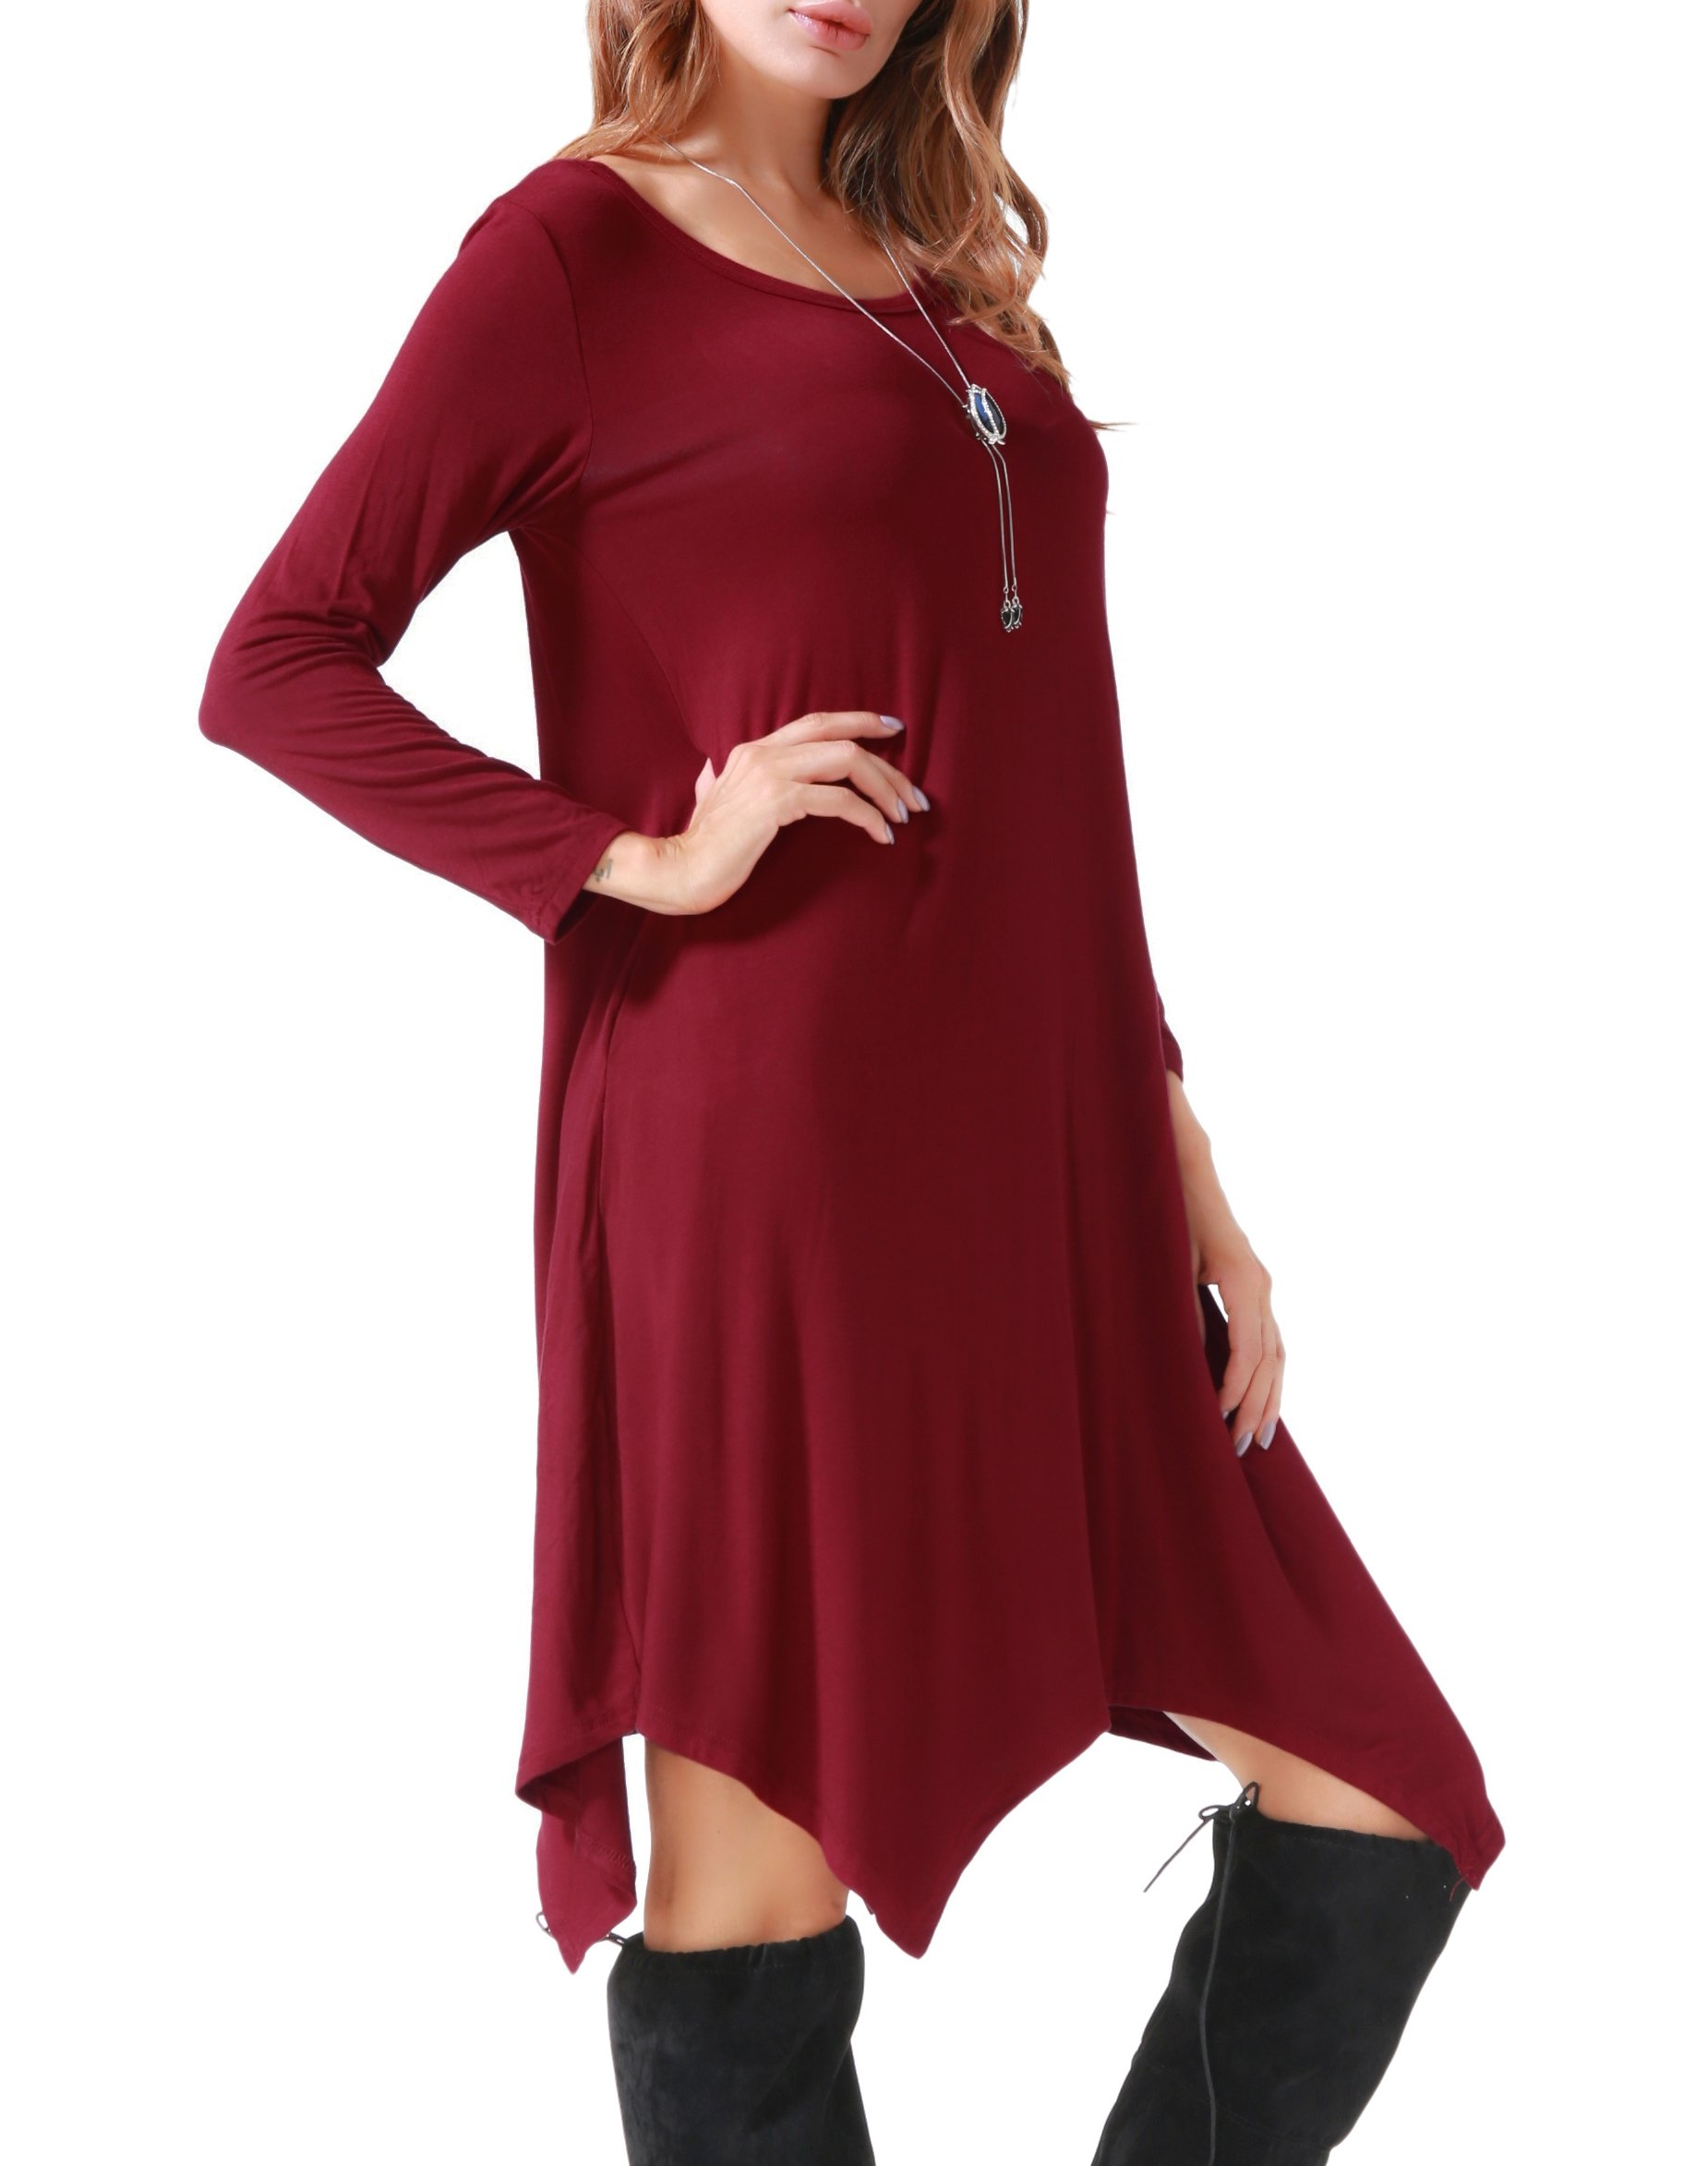 Invug Women Casual Loose Soft Crewneck Long Sleeve Pockets Swing T-shirt Dress Dark Red XXL by Invug (Image #6)